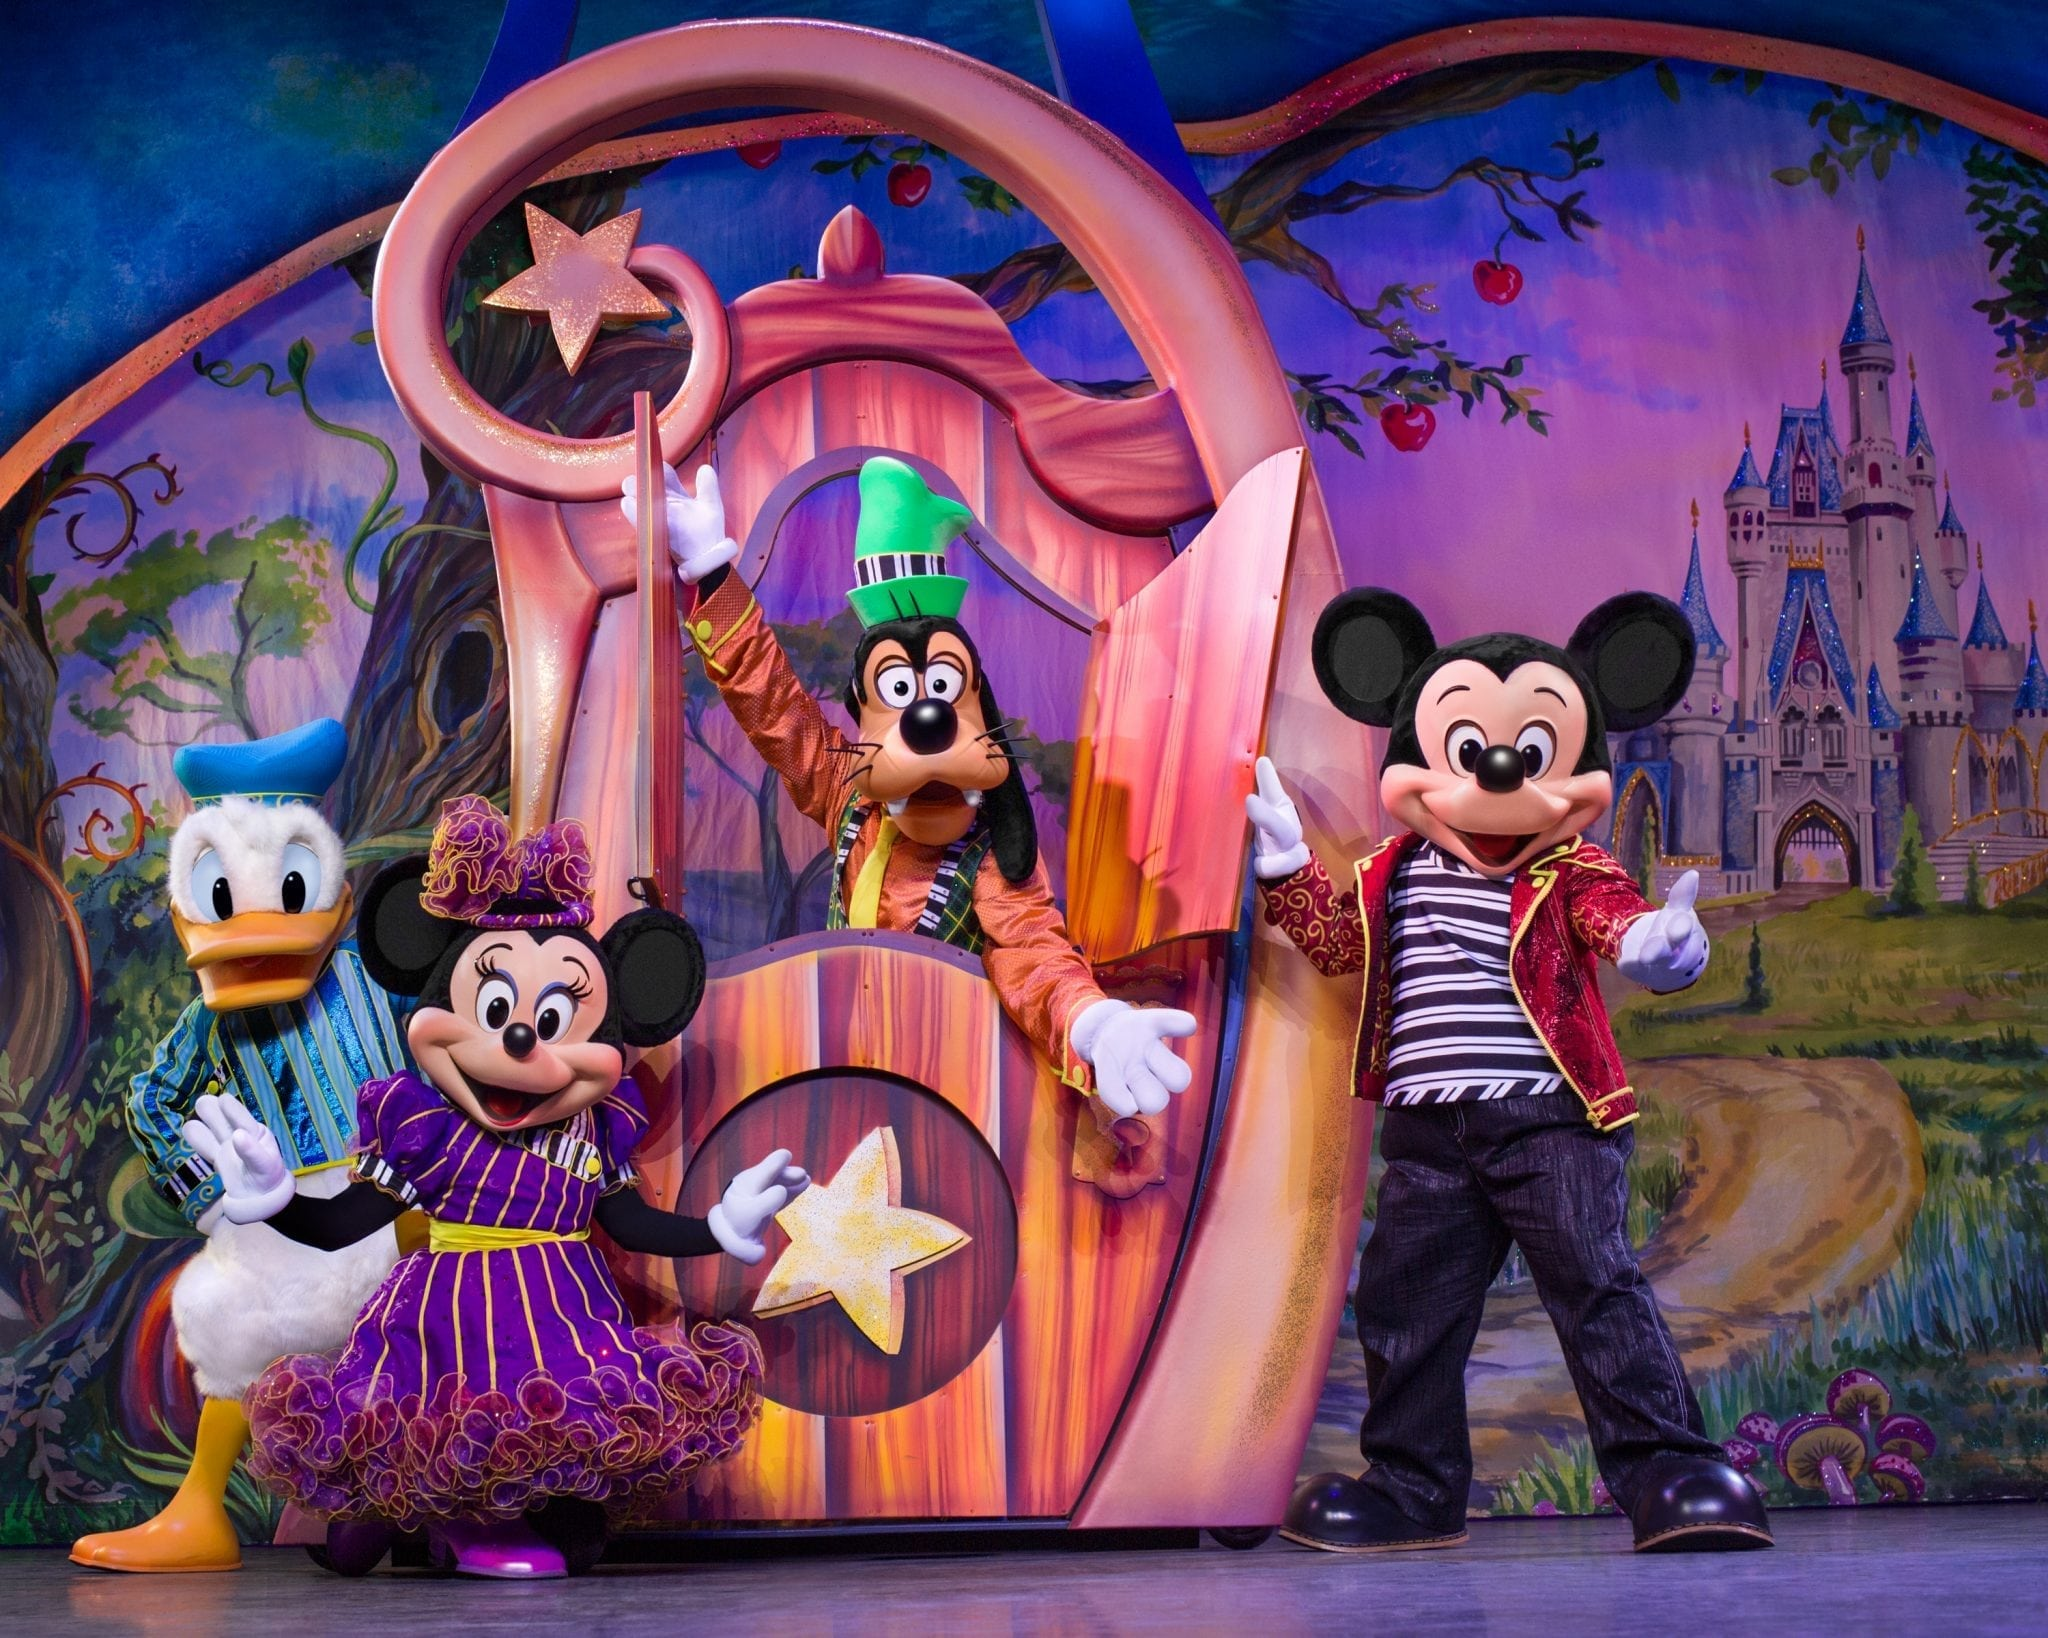 Disney Live: Mickey and Minnie's Doorway to Magic